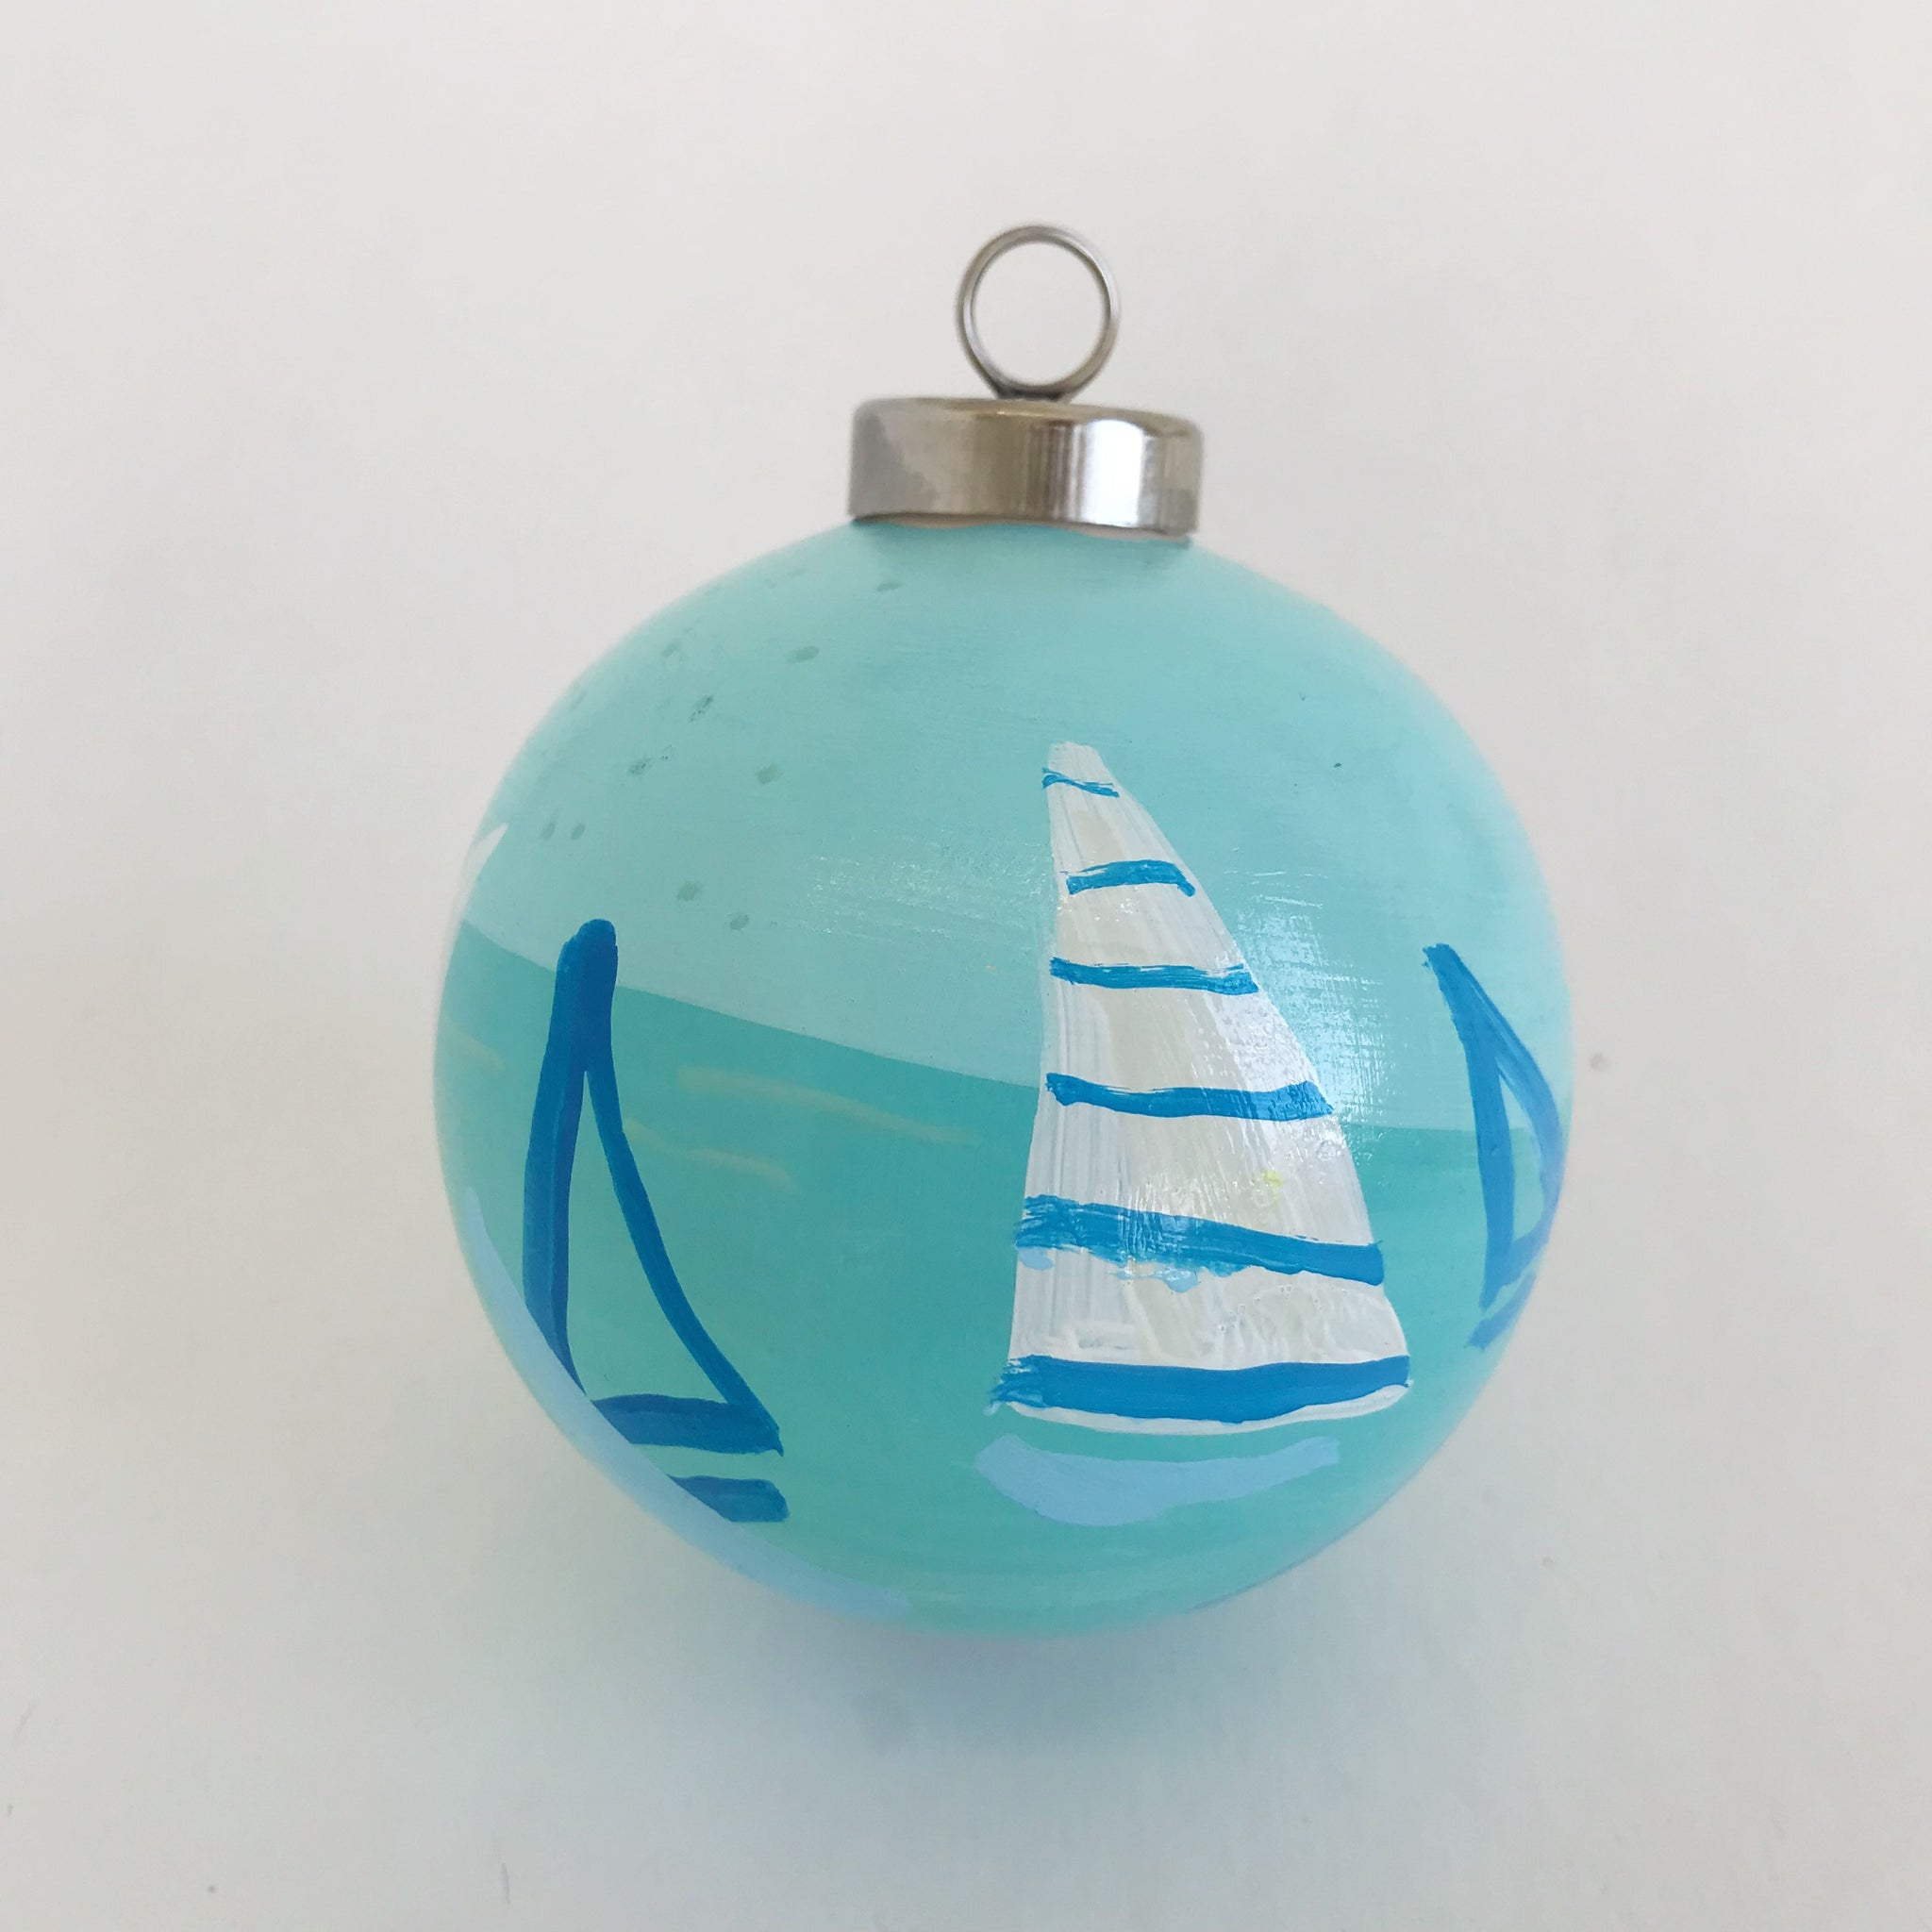 Regatta Ornament 24